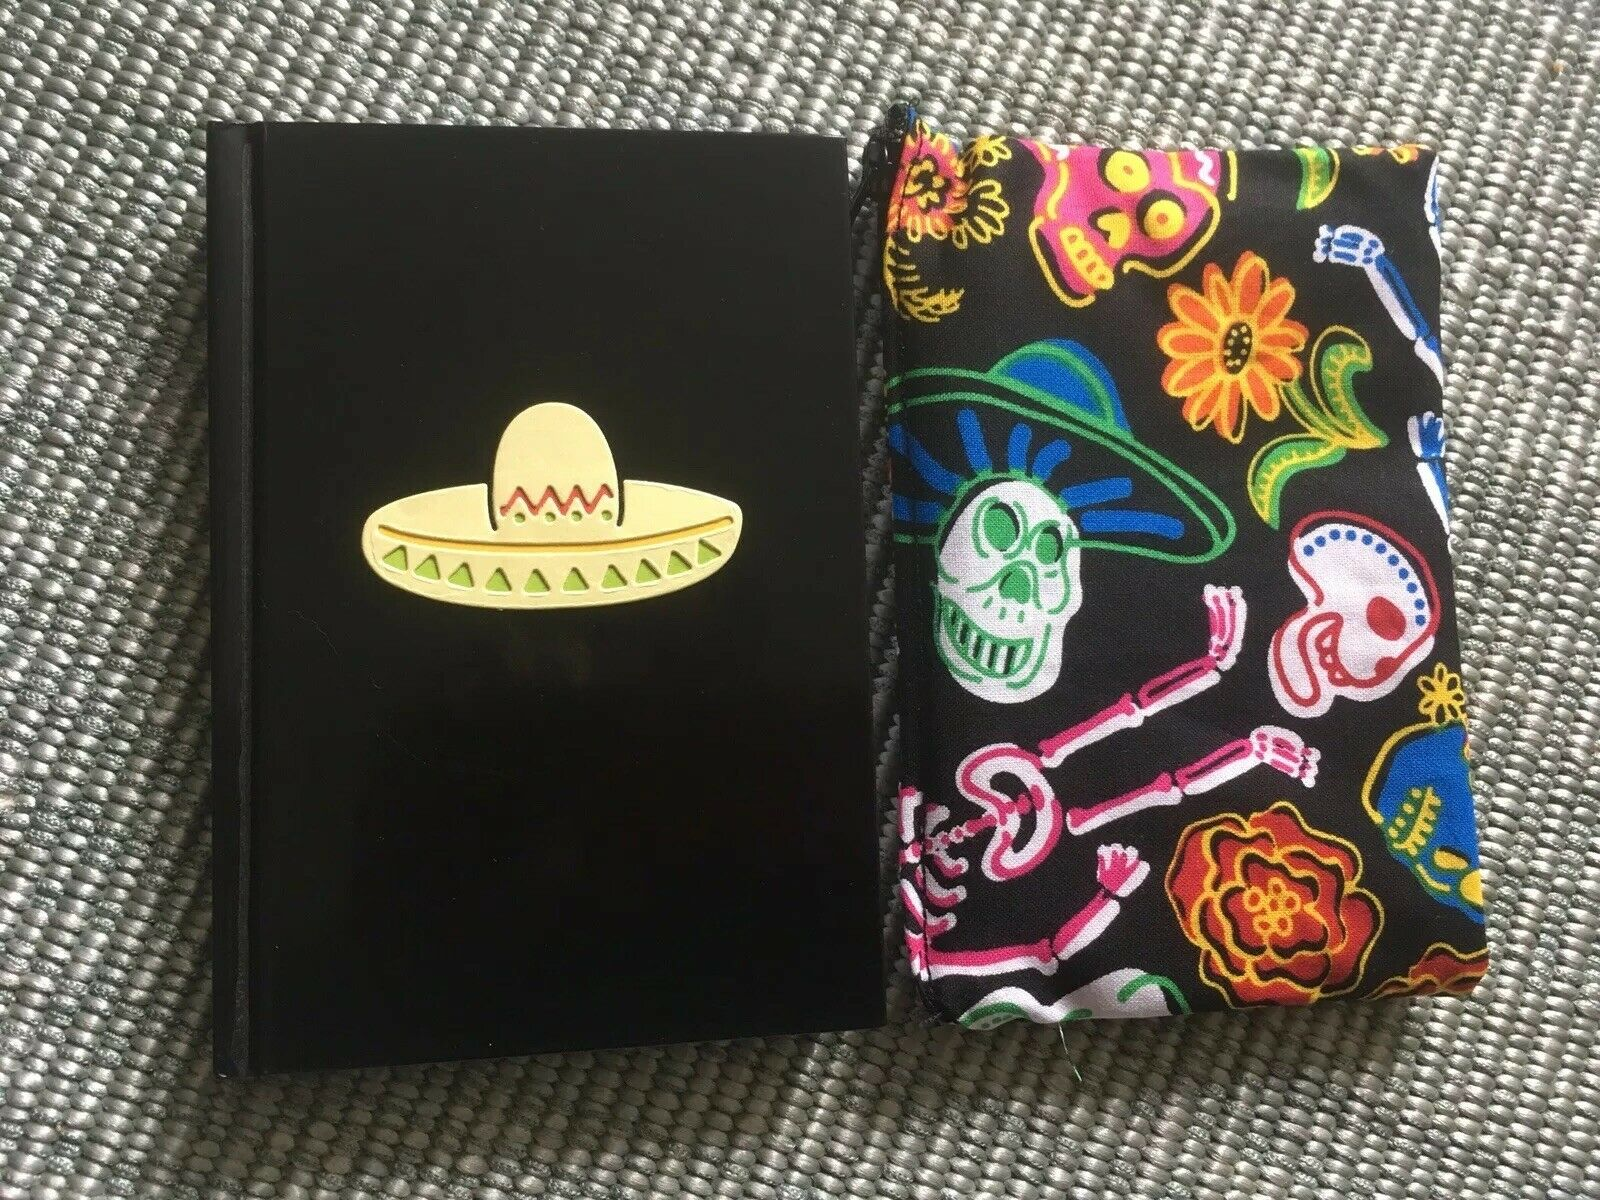 Day Of The Dead Sugar Skull Mexico🌶Cosmetic Bag +Sombrero Notebook 2pc Gift Set